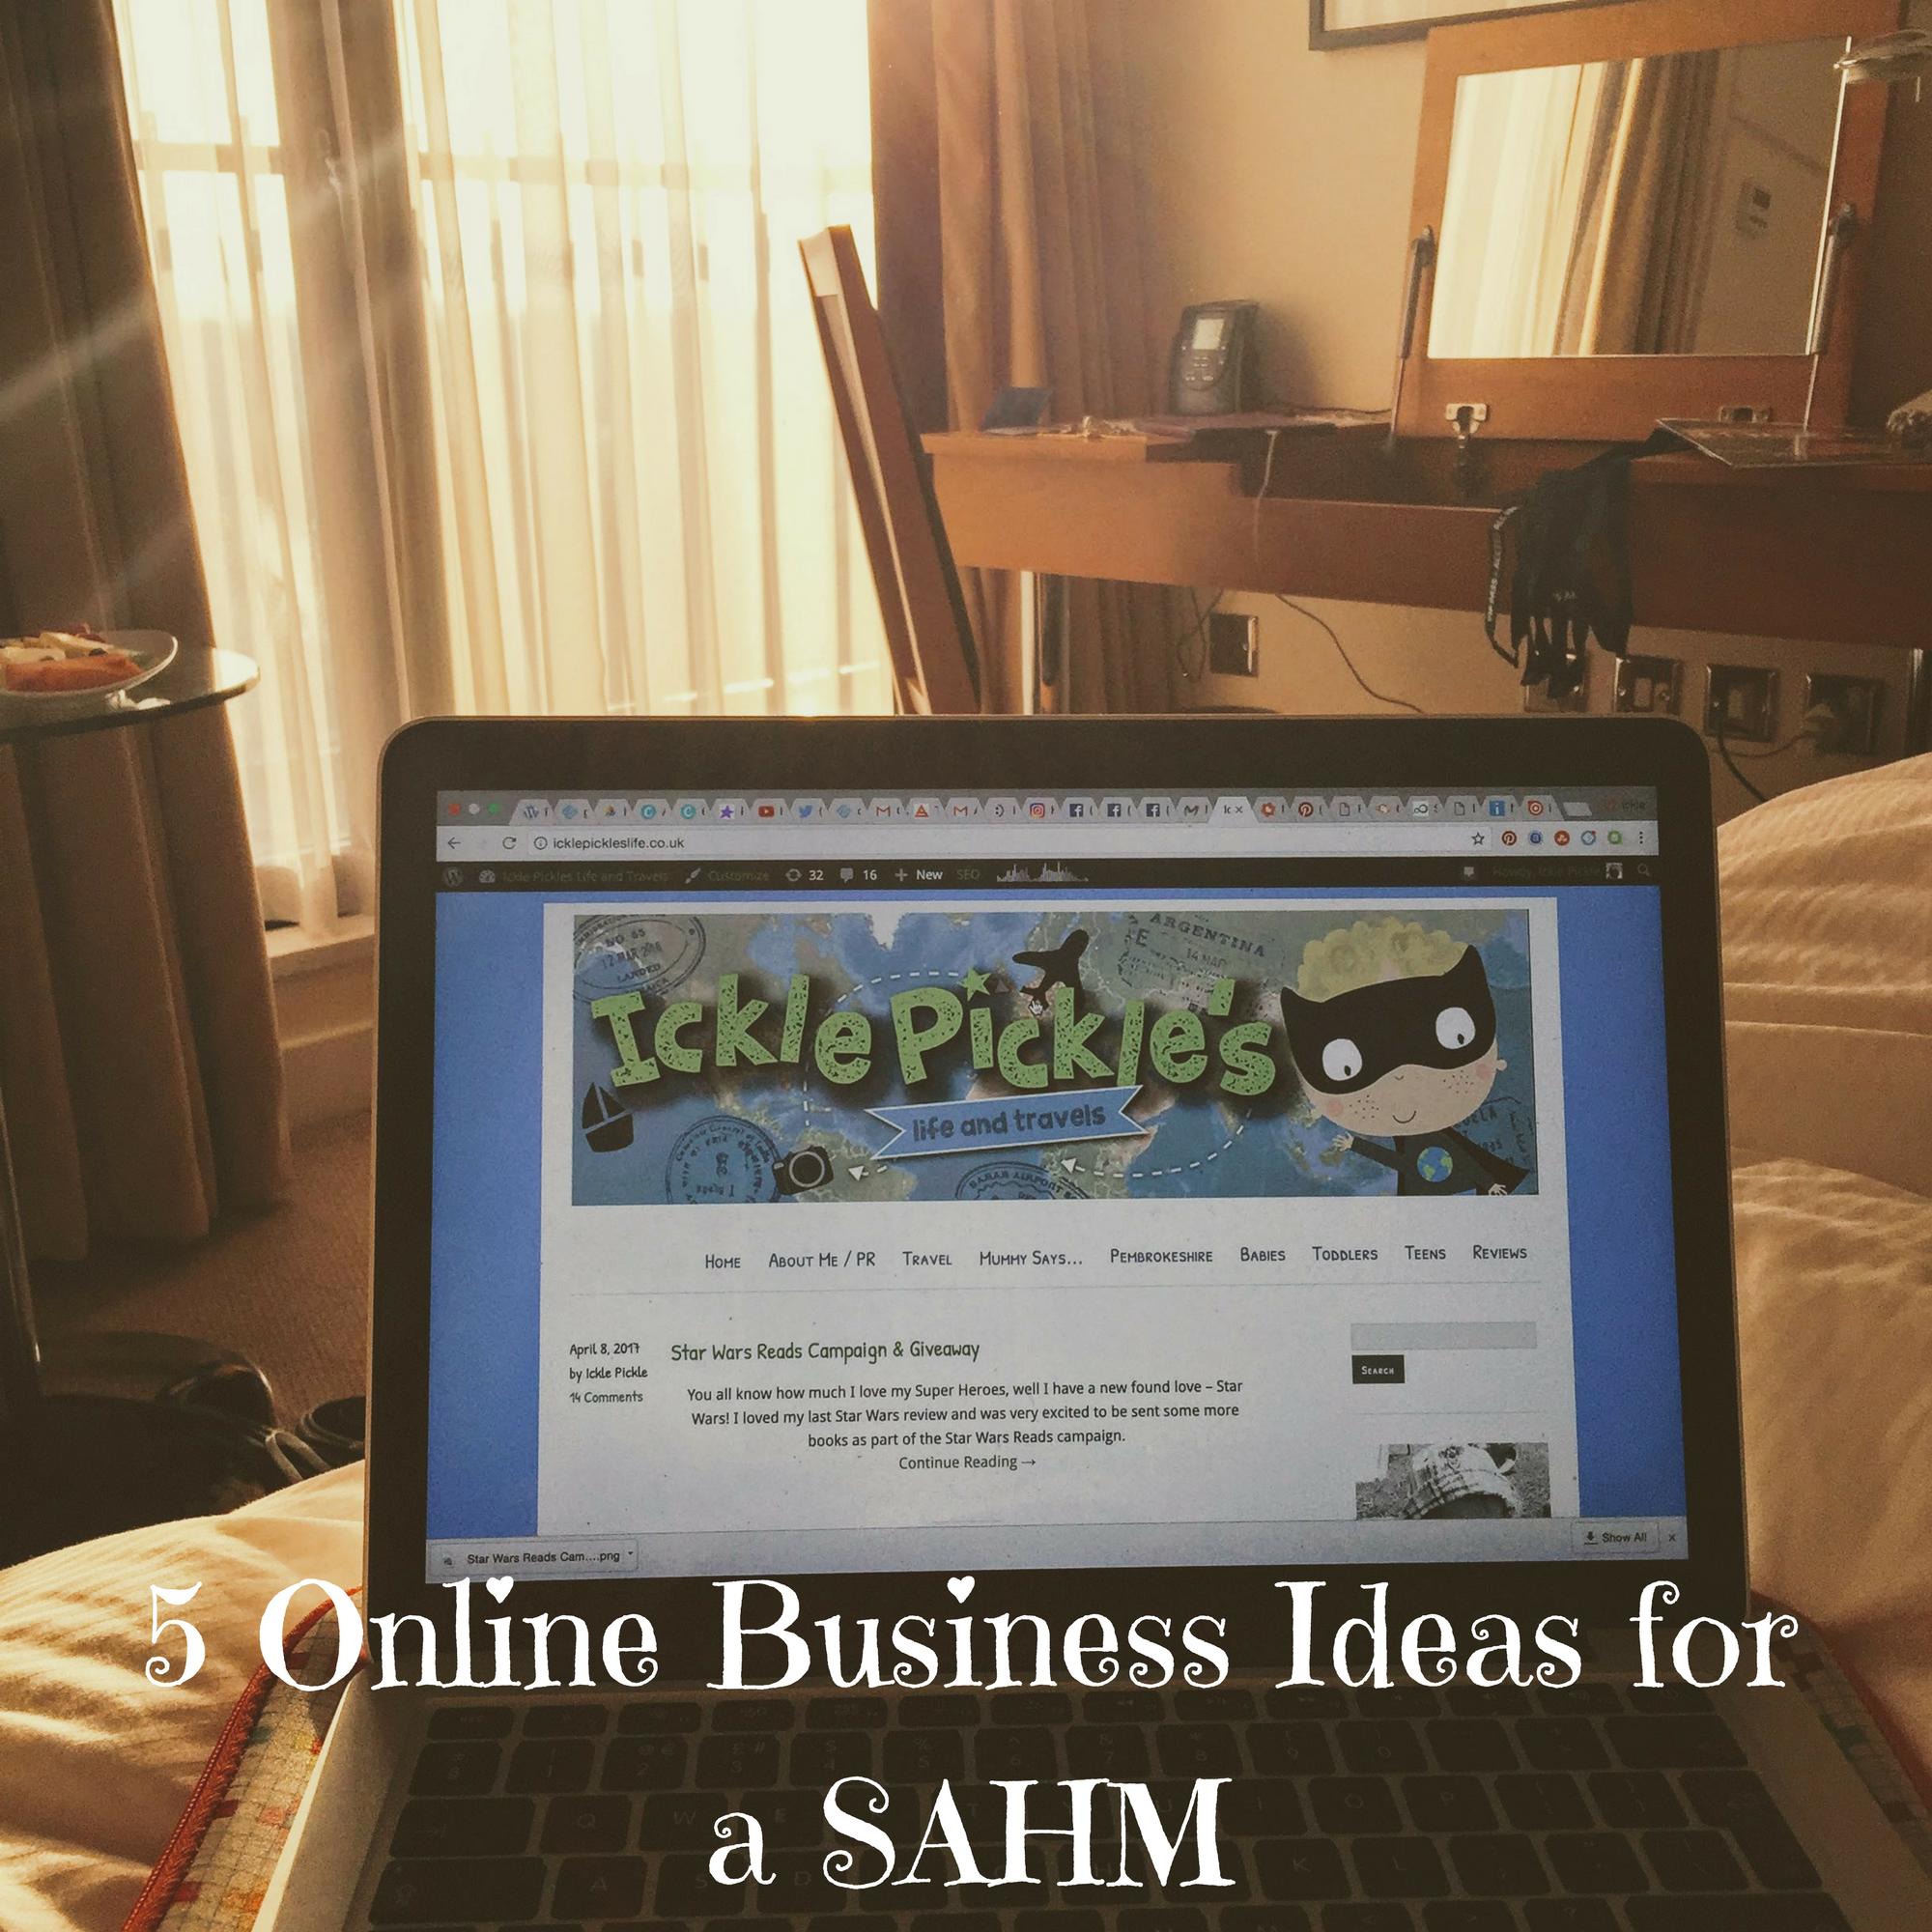 5 Online Business Ideas for a SAHM